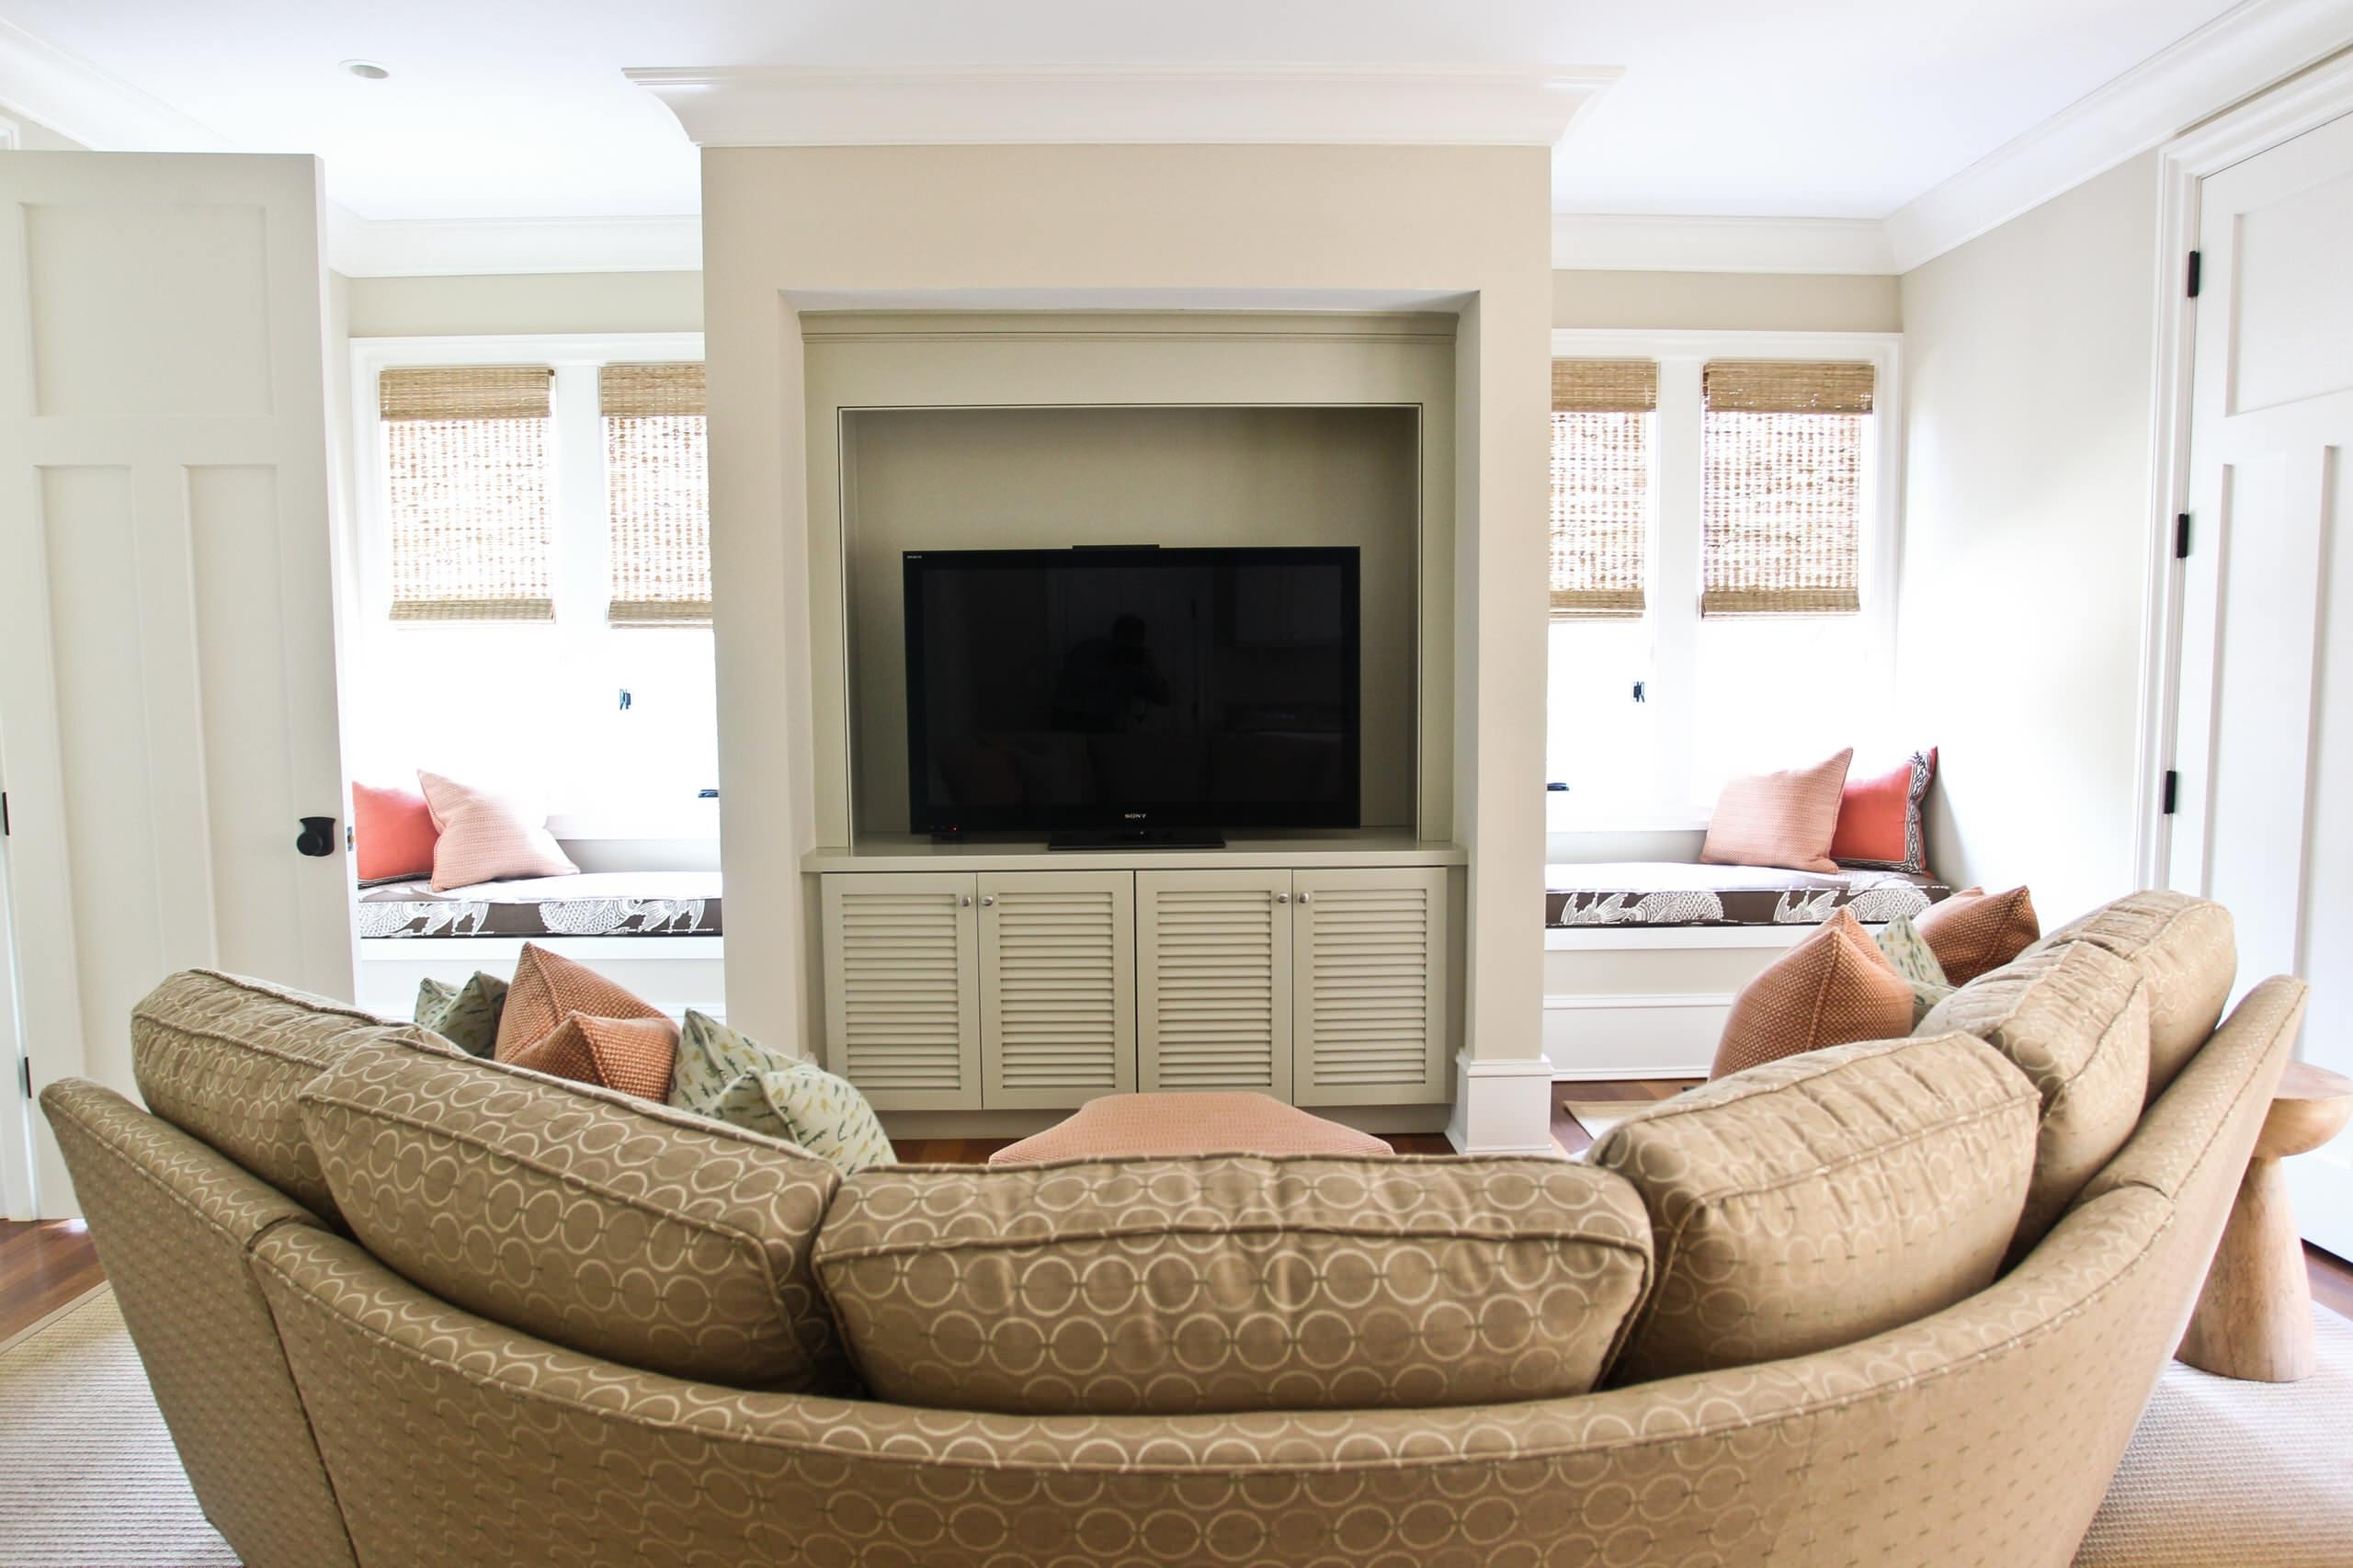 Furniture: Beautiful Brown Accent Curved Couch And Decorative With Regard To Most Popular Wall Accents Behind Tv Or Couch (View 14 of 15)